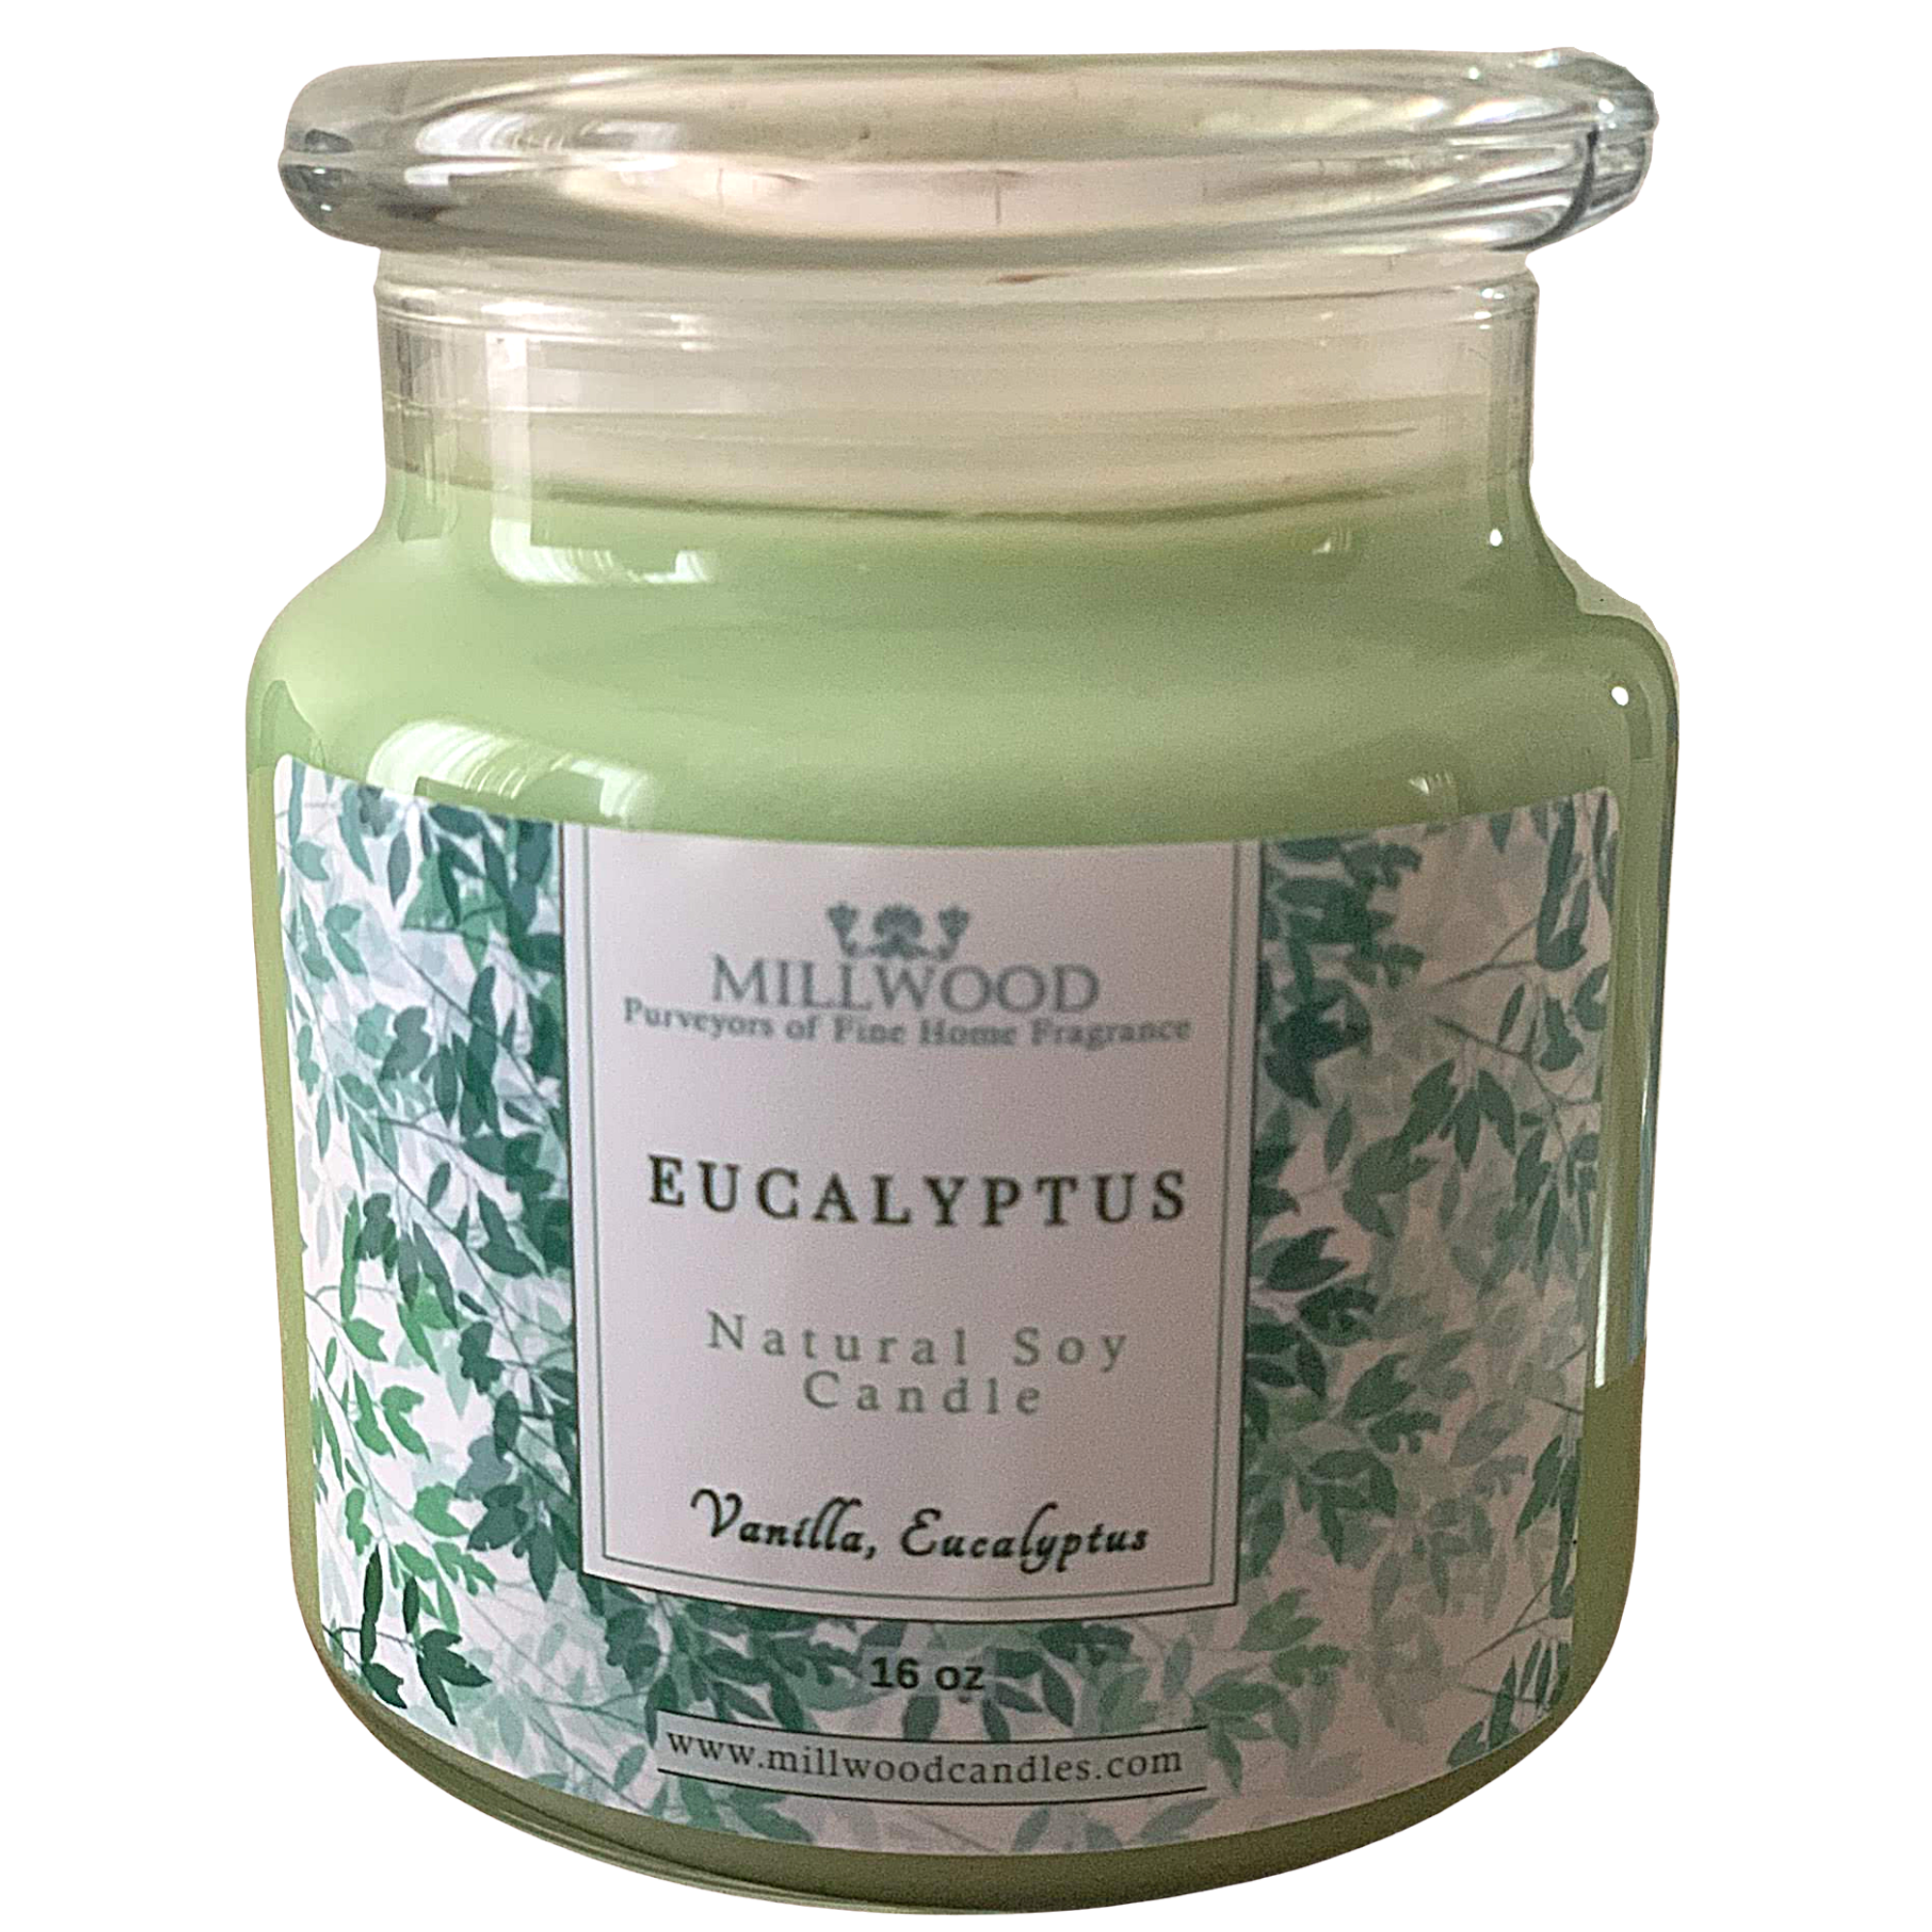 Eucalyptus Soy Candle Organic. 100% Soy. Made in the USA Millwood Candles